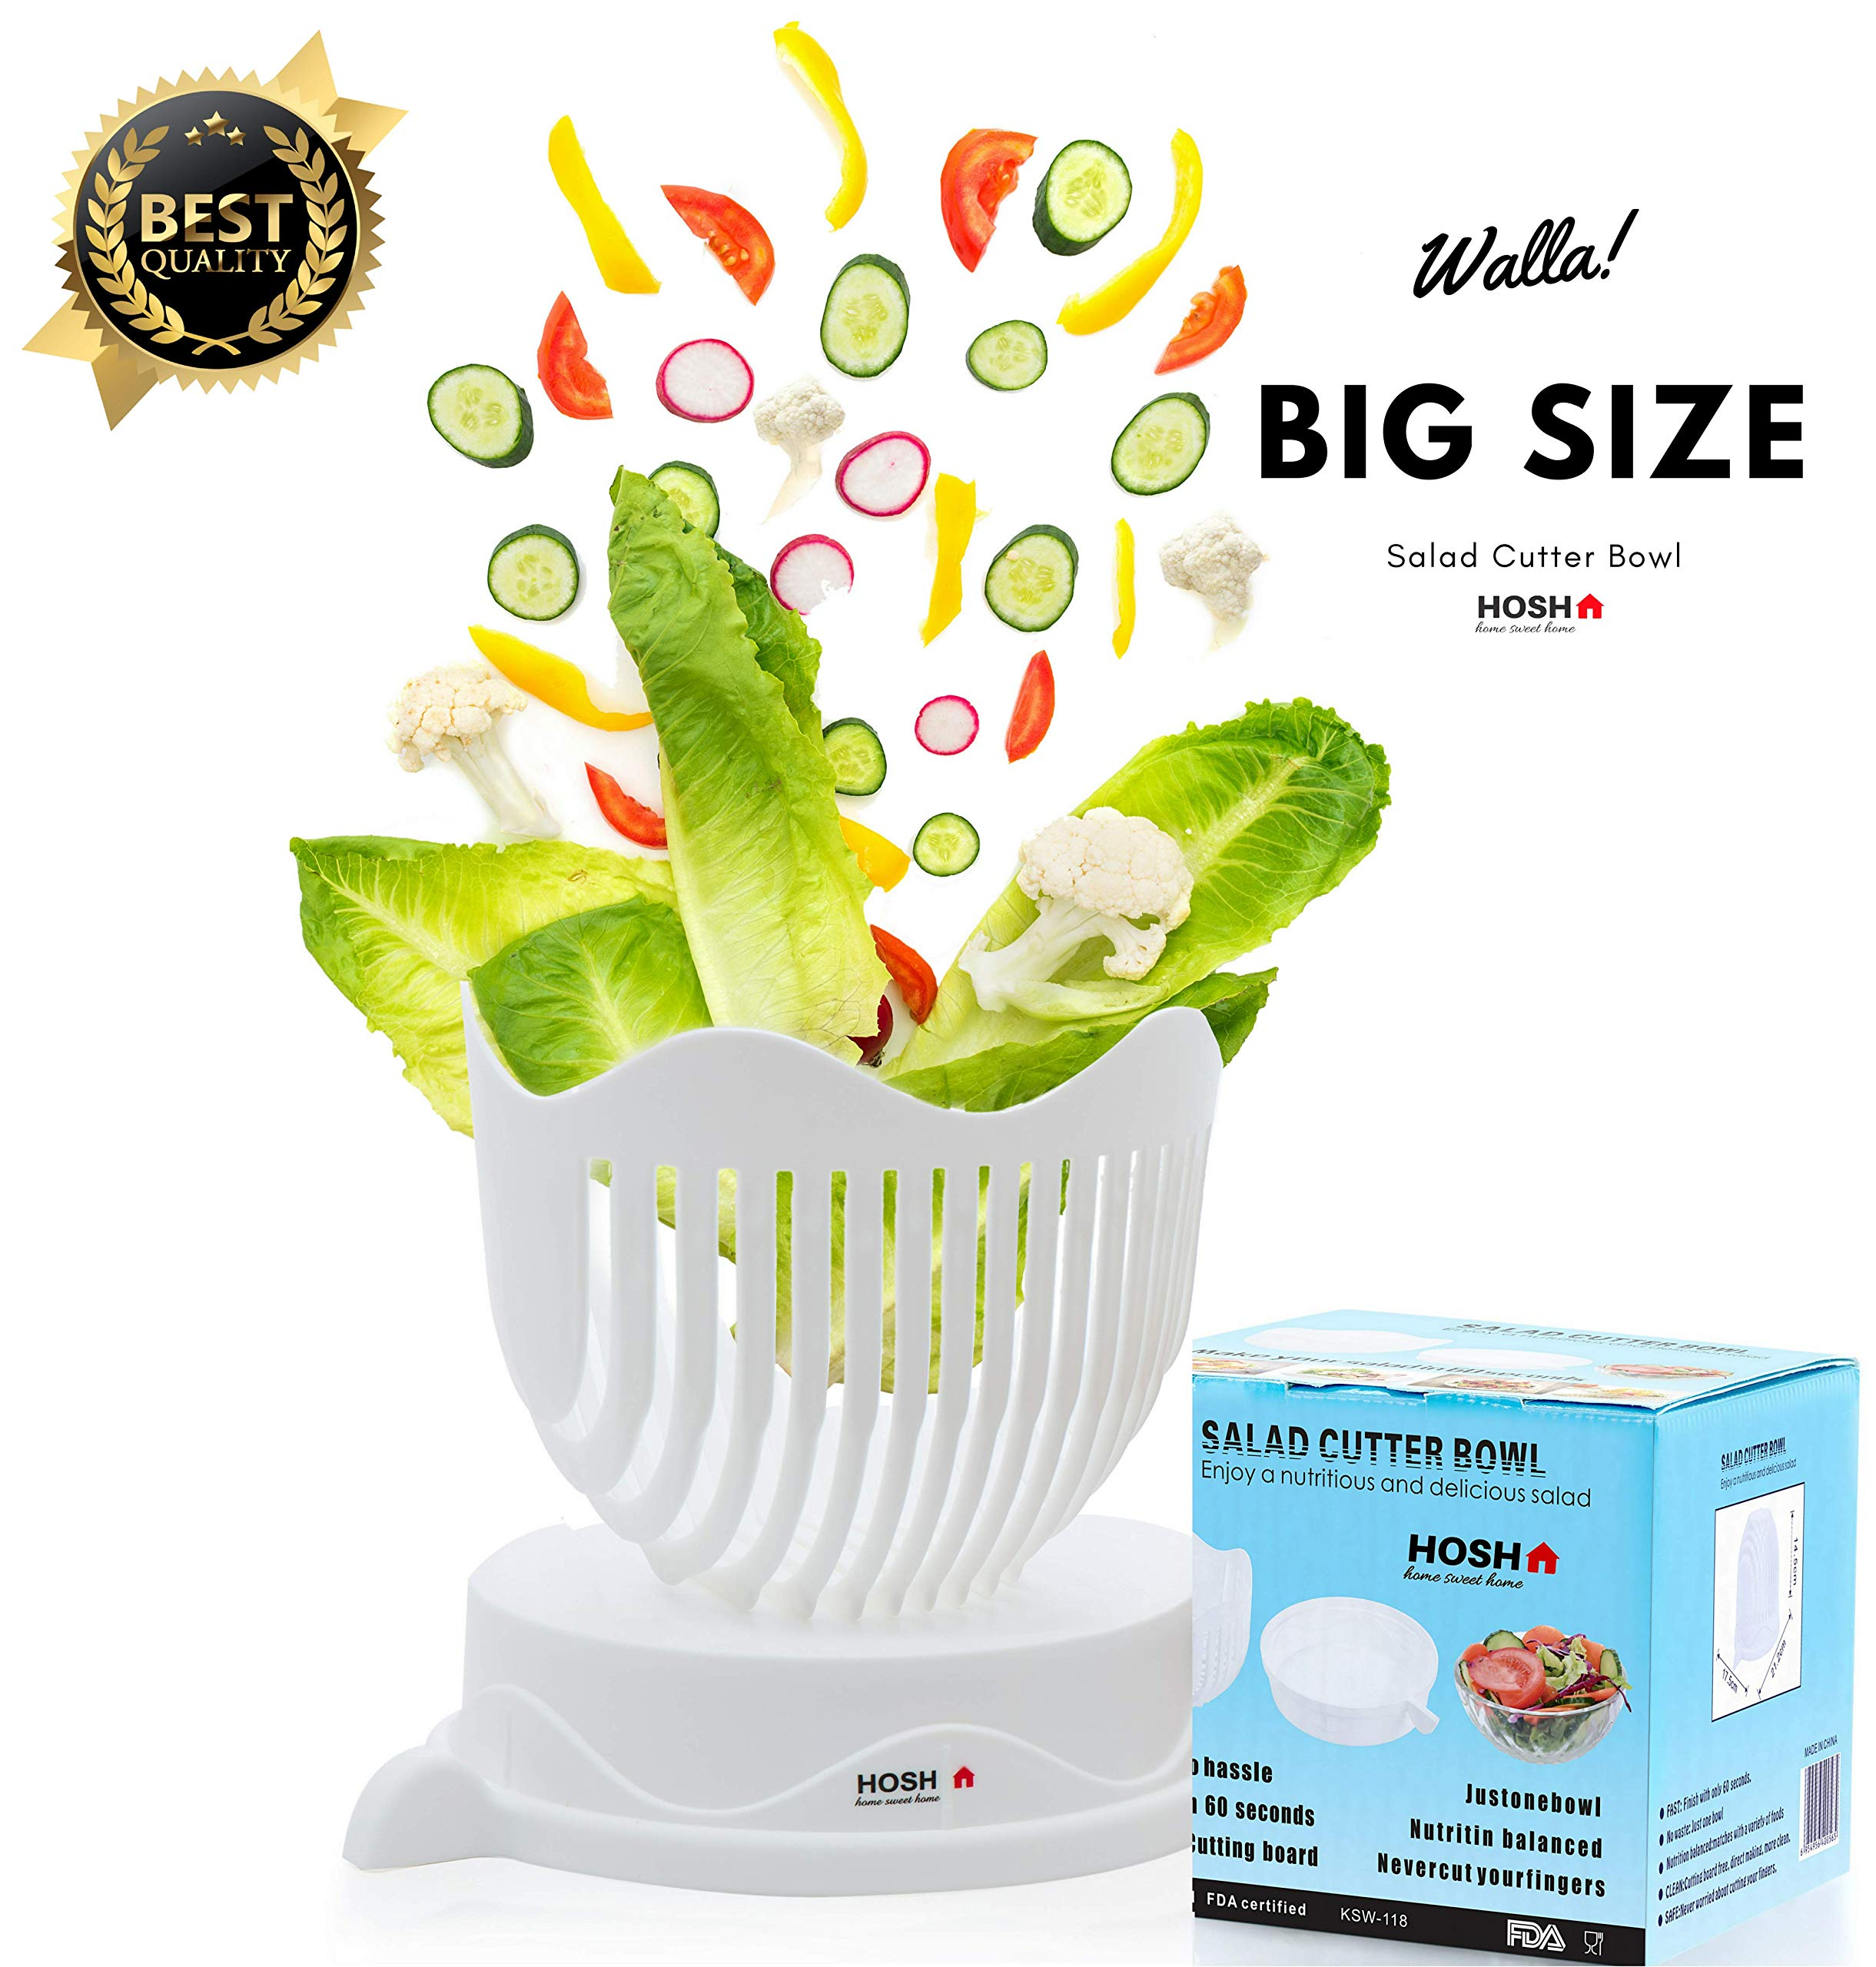 HOSH Salad Cutter Bowl/60 Seconds Salad Maker By Kitchen/HQ ABS Plastic/Large Size/Fast Fresh Fruit Vegetable Cutter Chopper Slicer/strainer/cutting board/1 Minute Salad Maker